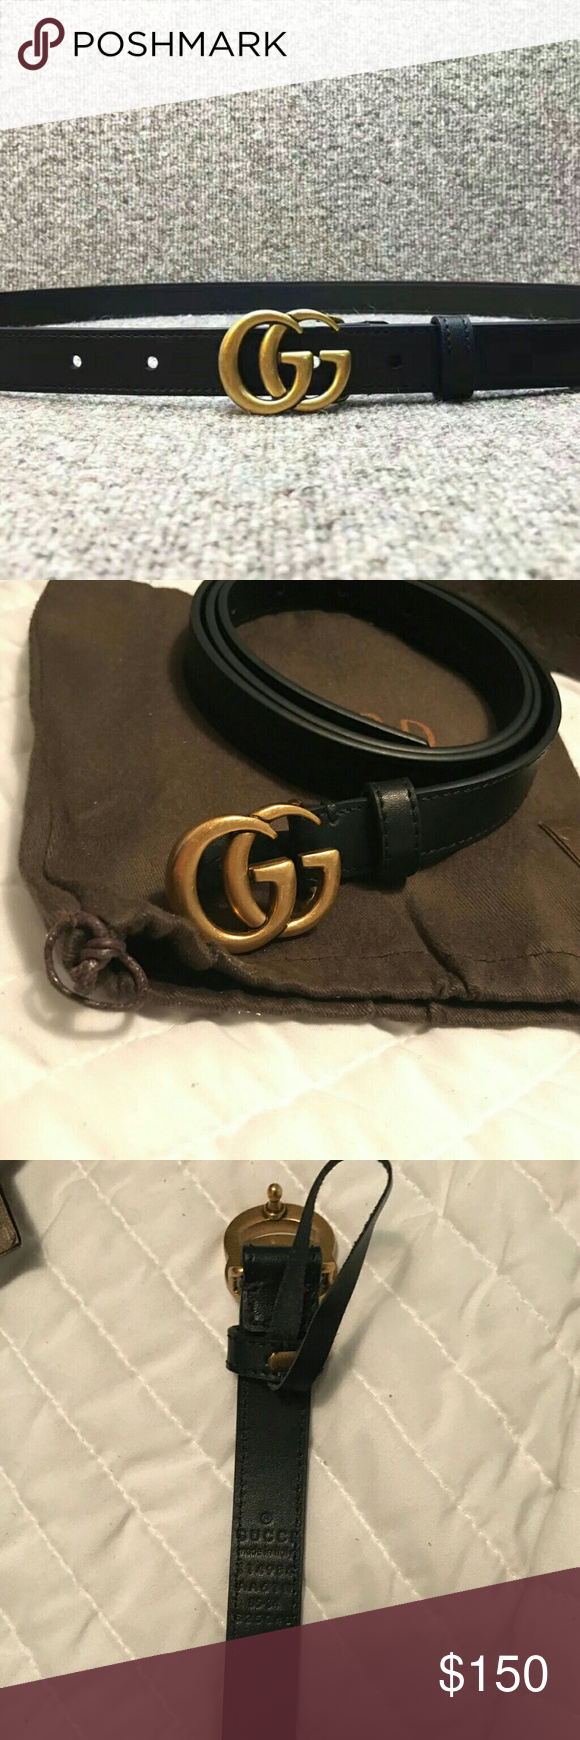 4628c270d055 Authentic Gucci belt Brand New Comes With Tags . Box And Dust Bag Gucci  Accessories Belts